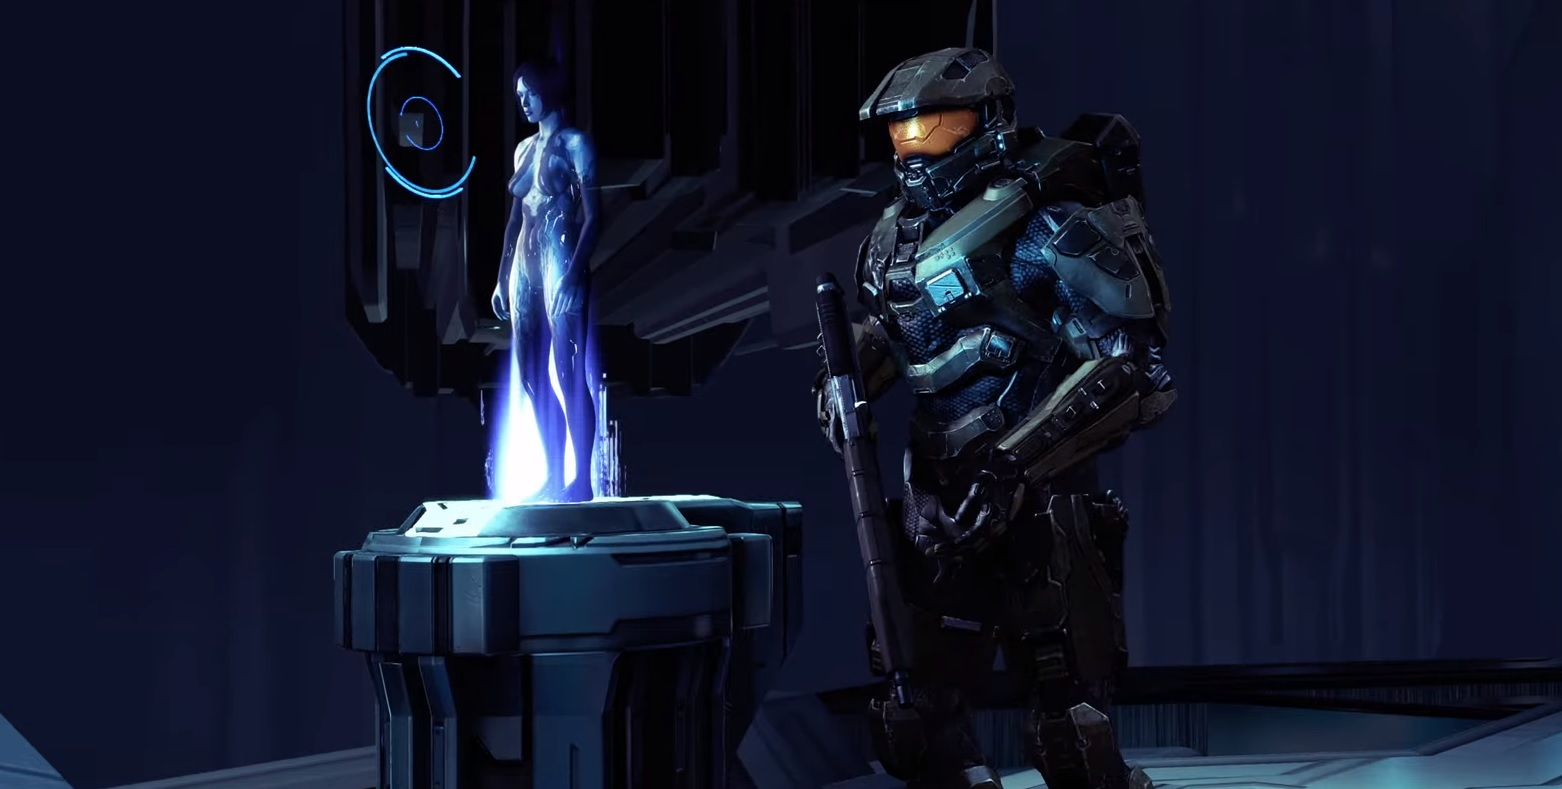 Halo ElDewrito modders gave Microsoft 'a kick in the pants' over Master Chief Collection